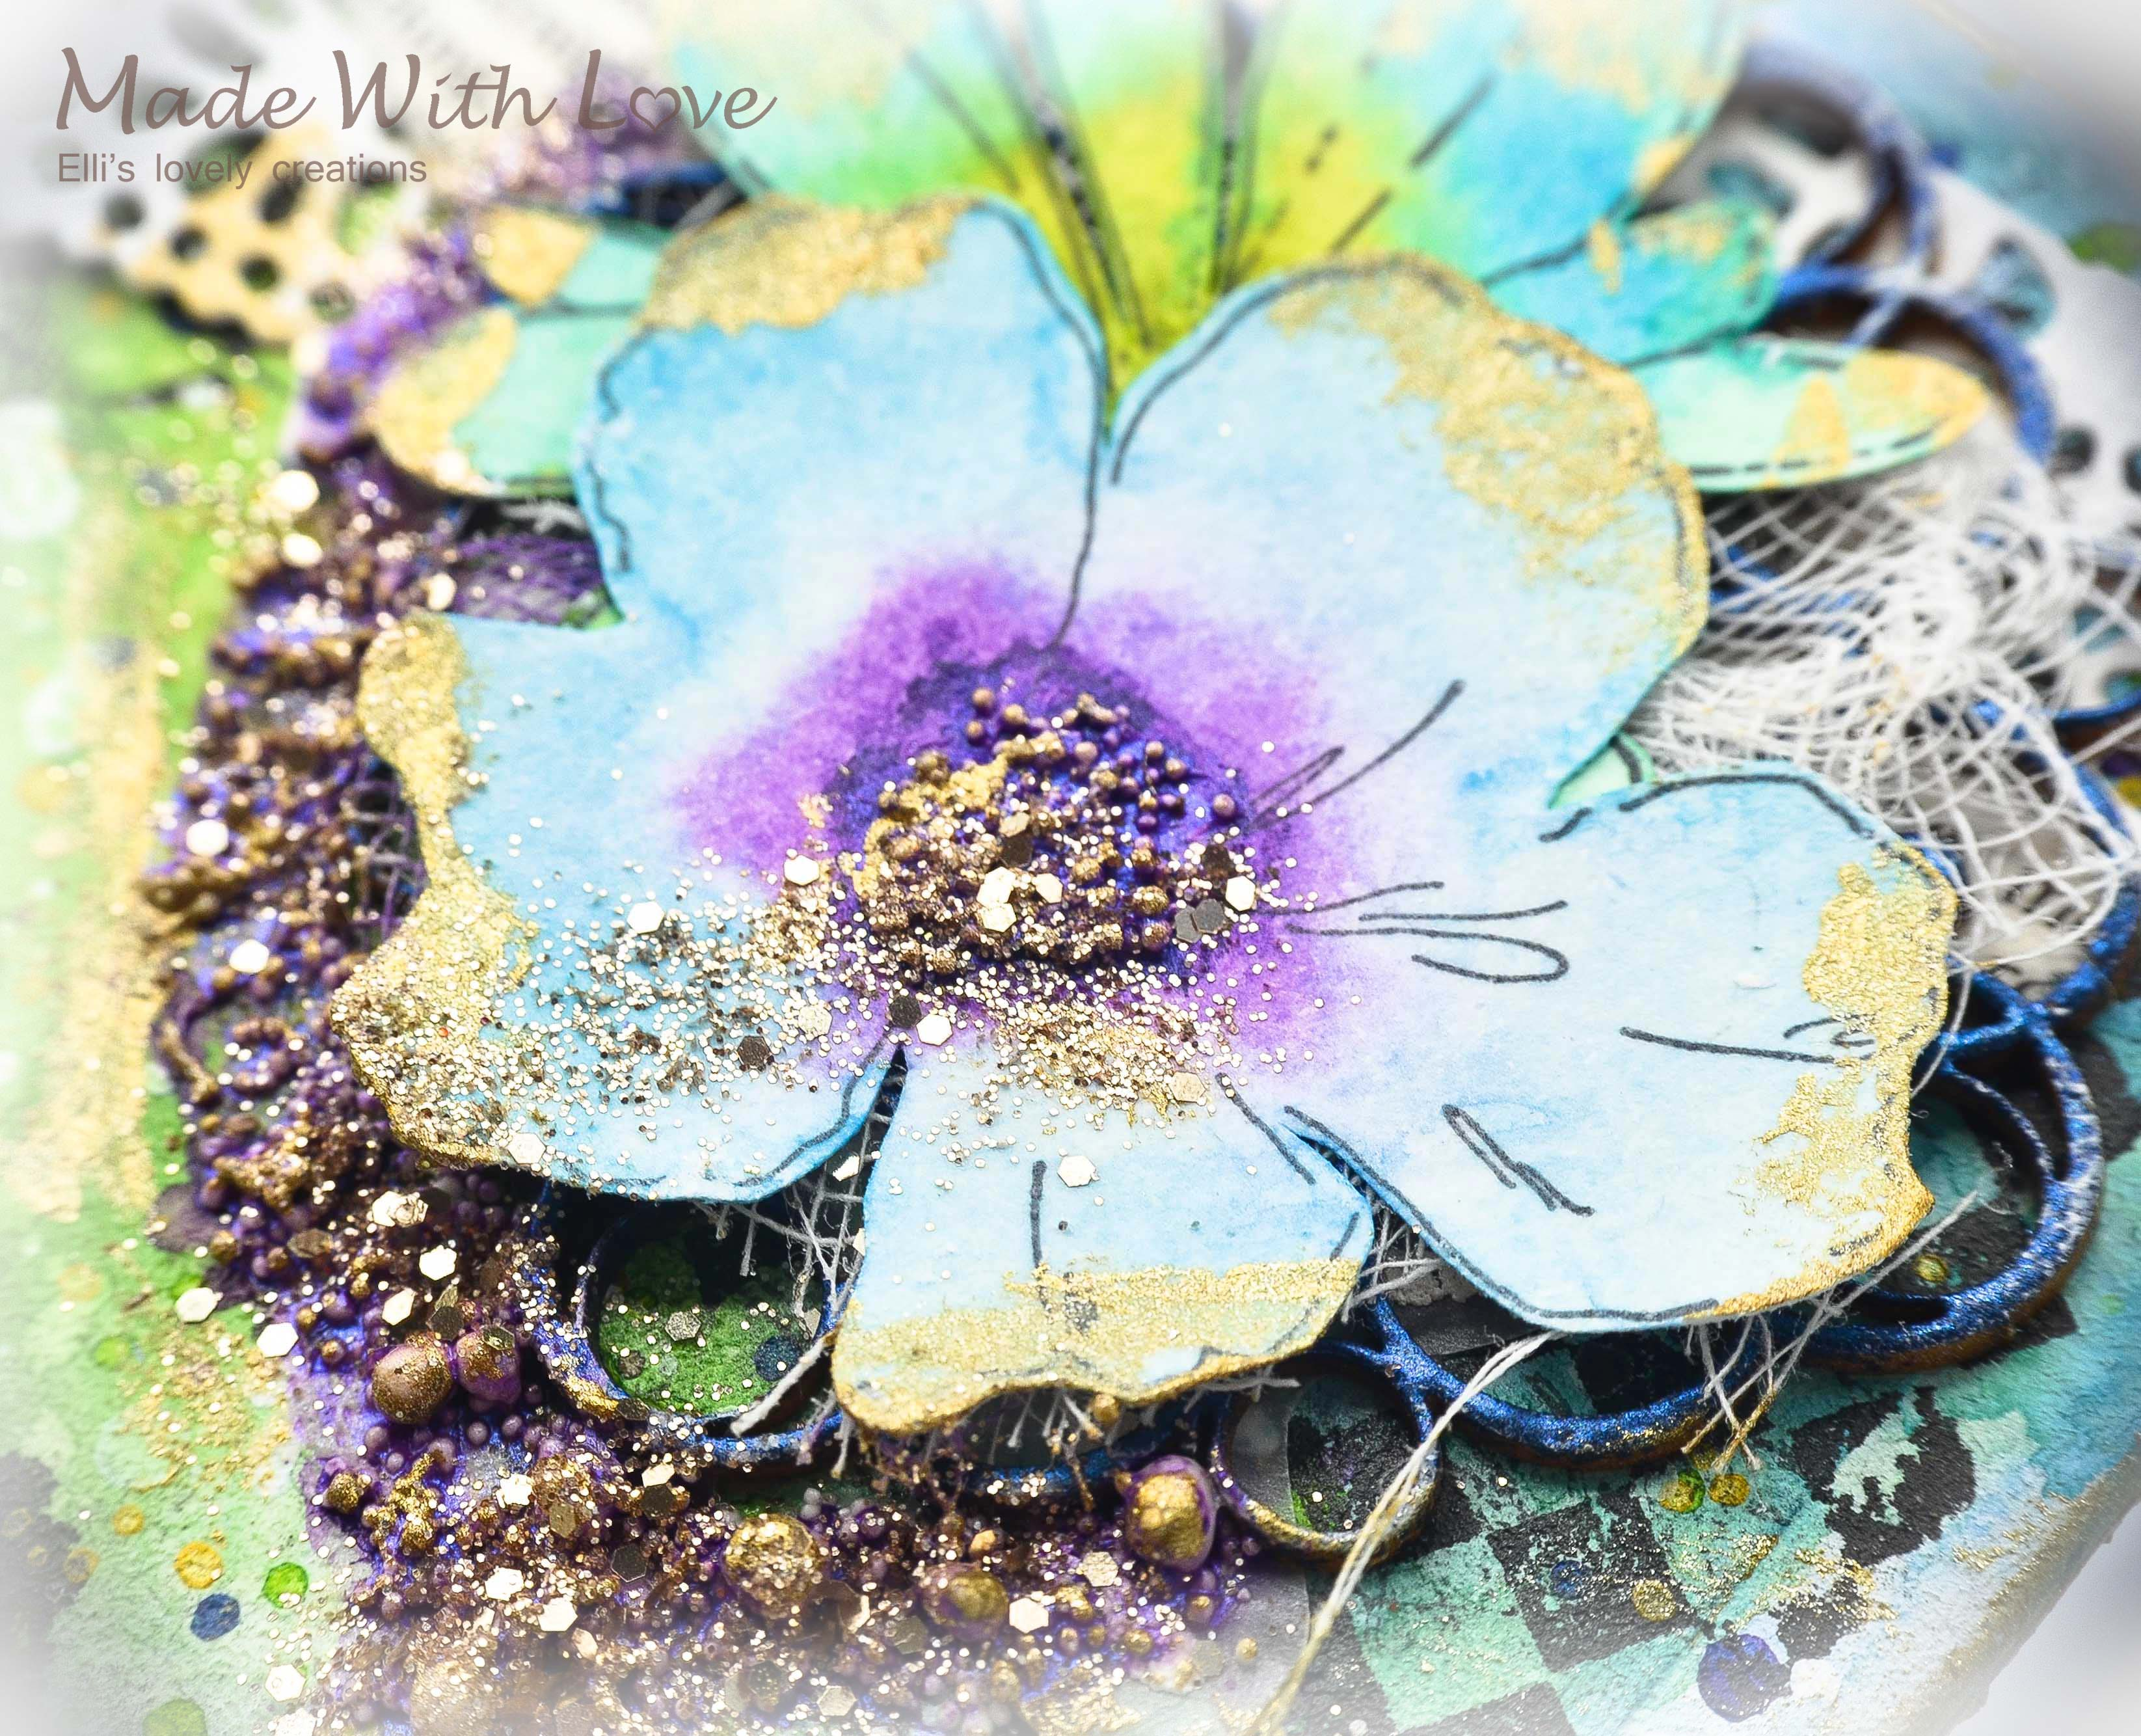 Mixed Media Summer Garden Wedding Album Cover Enjoy 0044